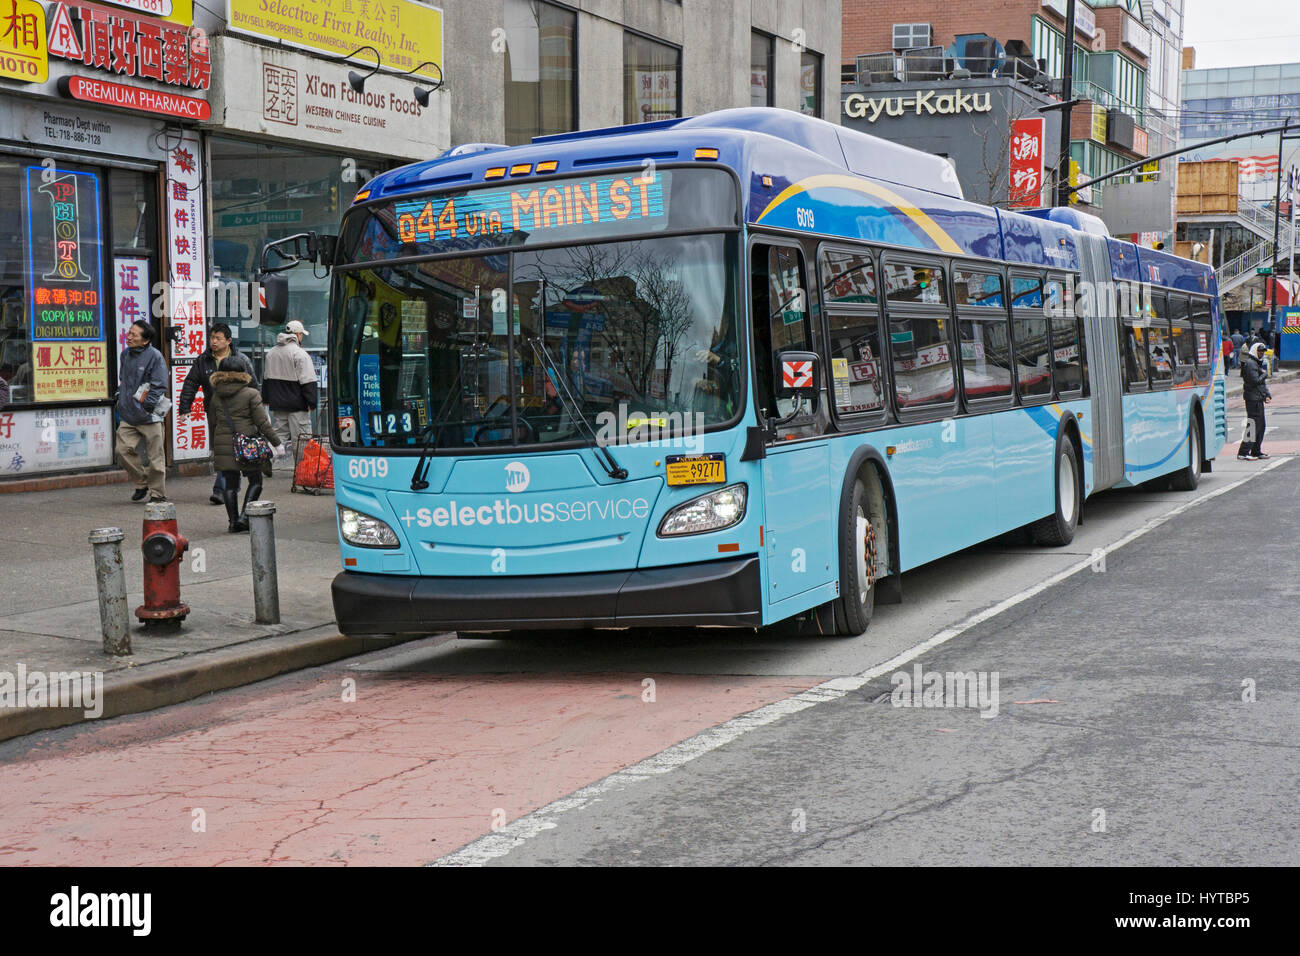 New style New York City easy-entry articulated bus on Main Street in Chinatown, Flushing, Queens, New York City. - Stock Image